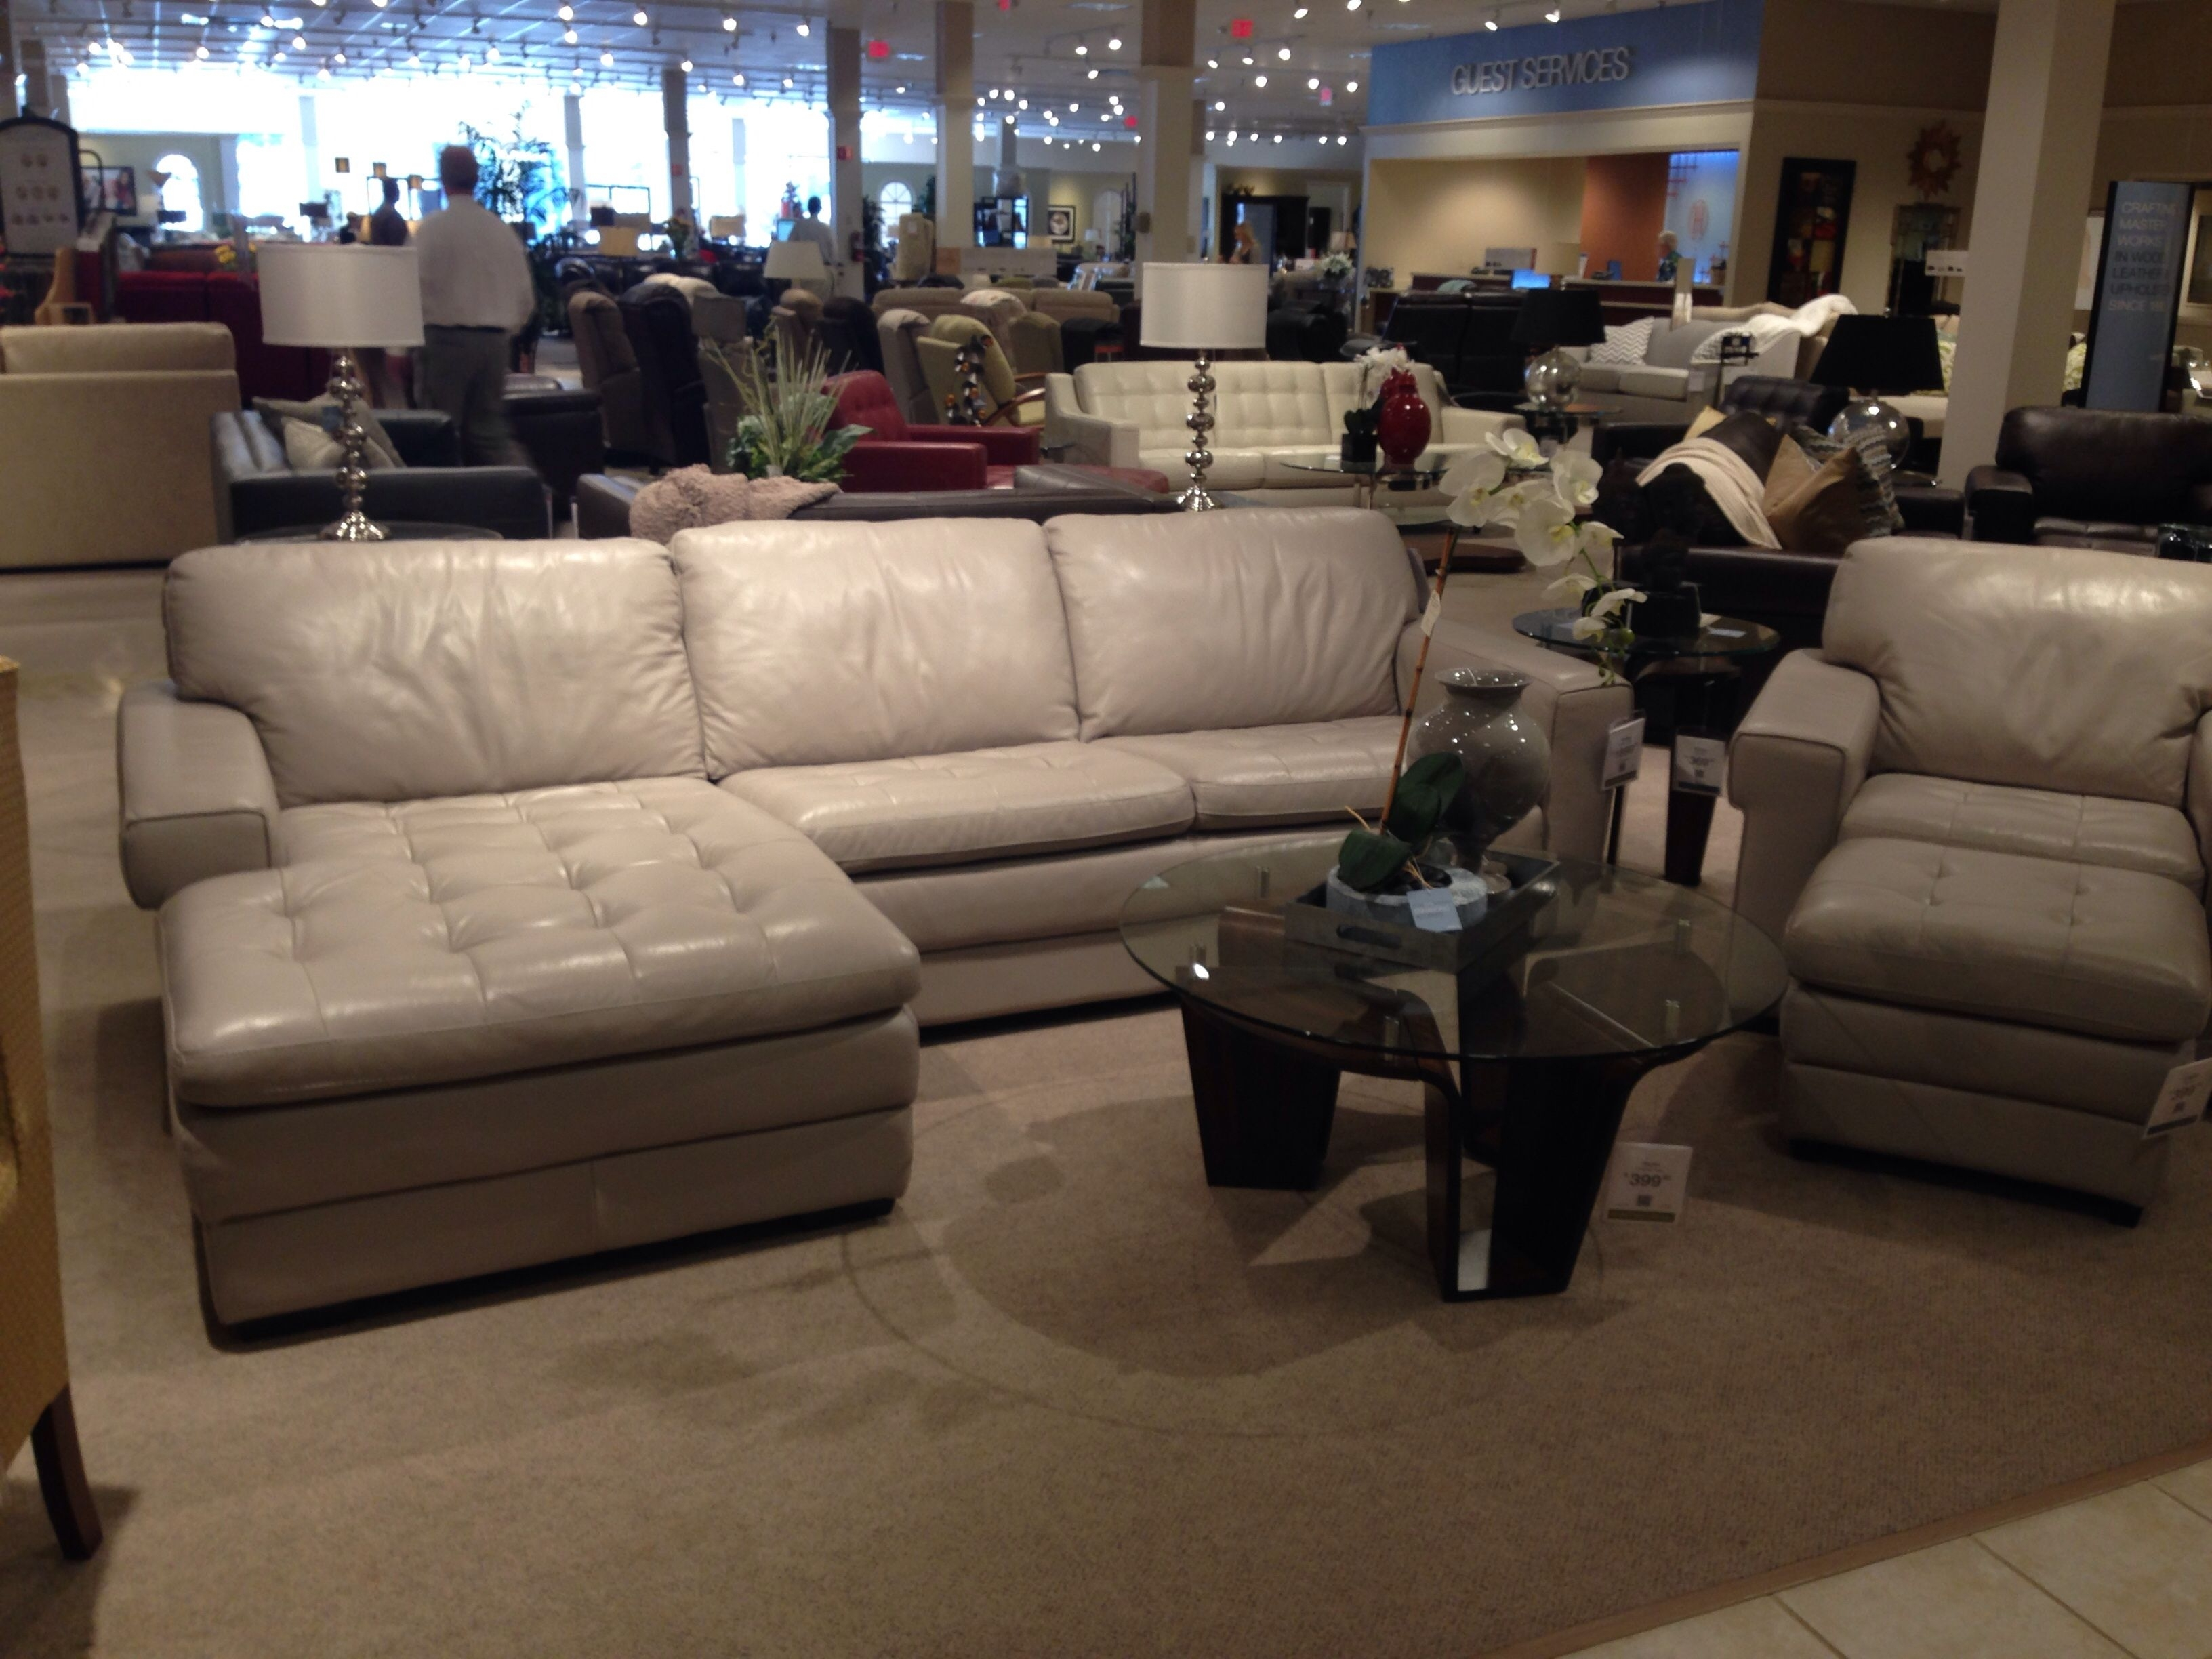 Galaxy Sectional Havertys | For The Home | Pinterest | Room Decor Regarding Havertys Sectional Sofas (View 8 of 10)